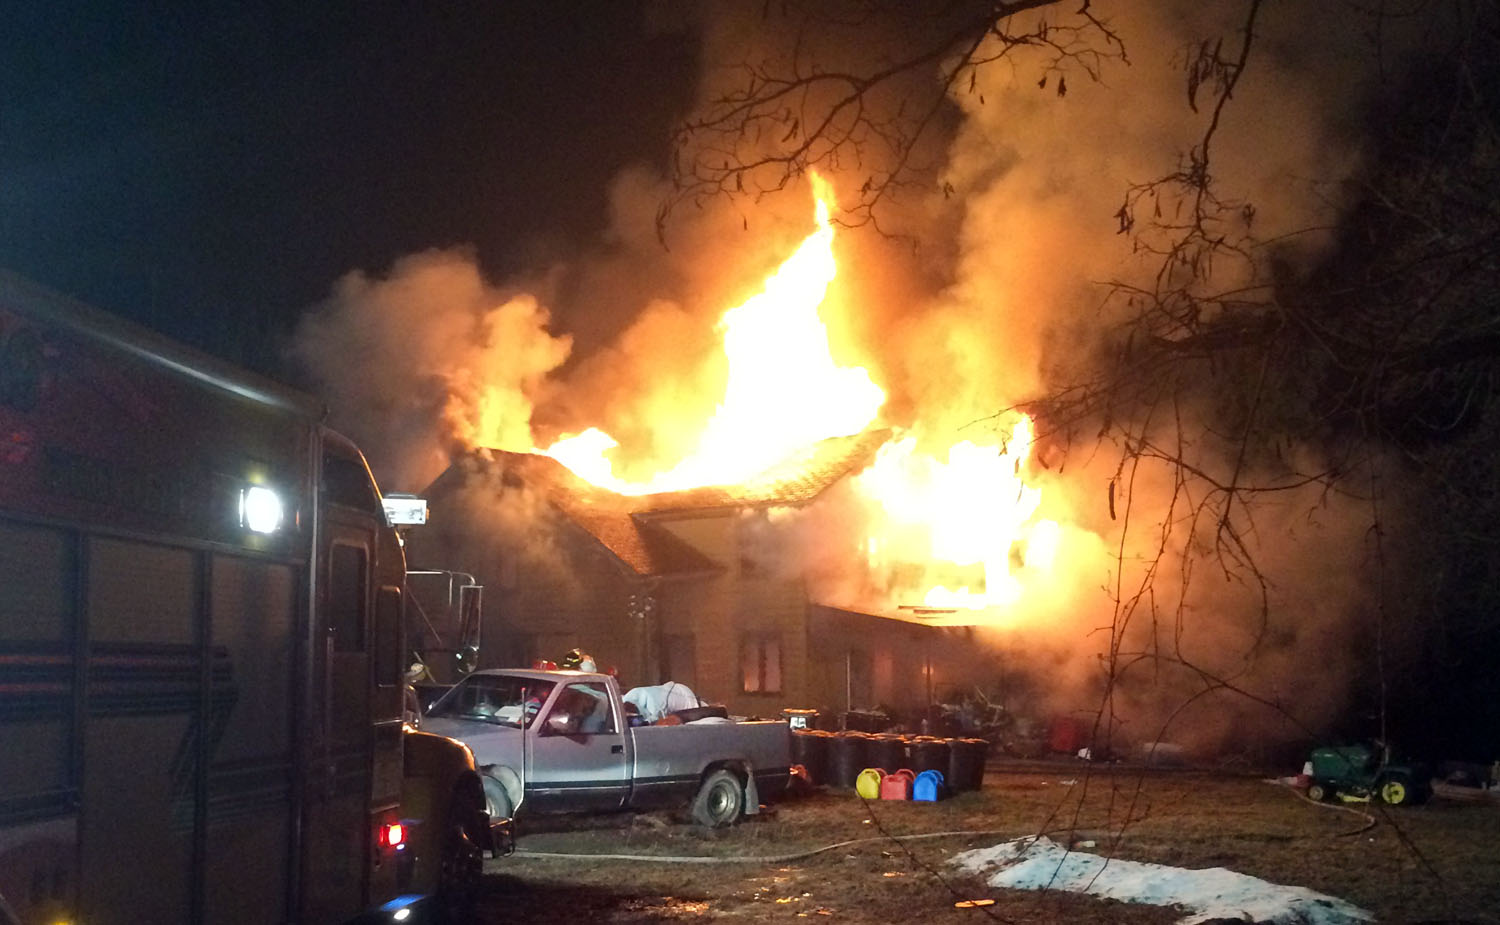 Nunda Firefighters Make Dramatic Roof Rescue in Portage House Fire